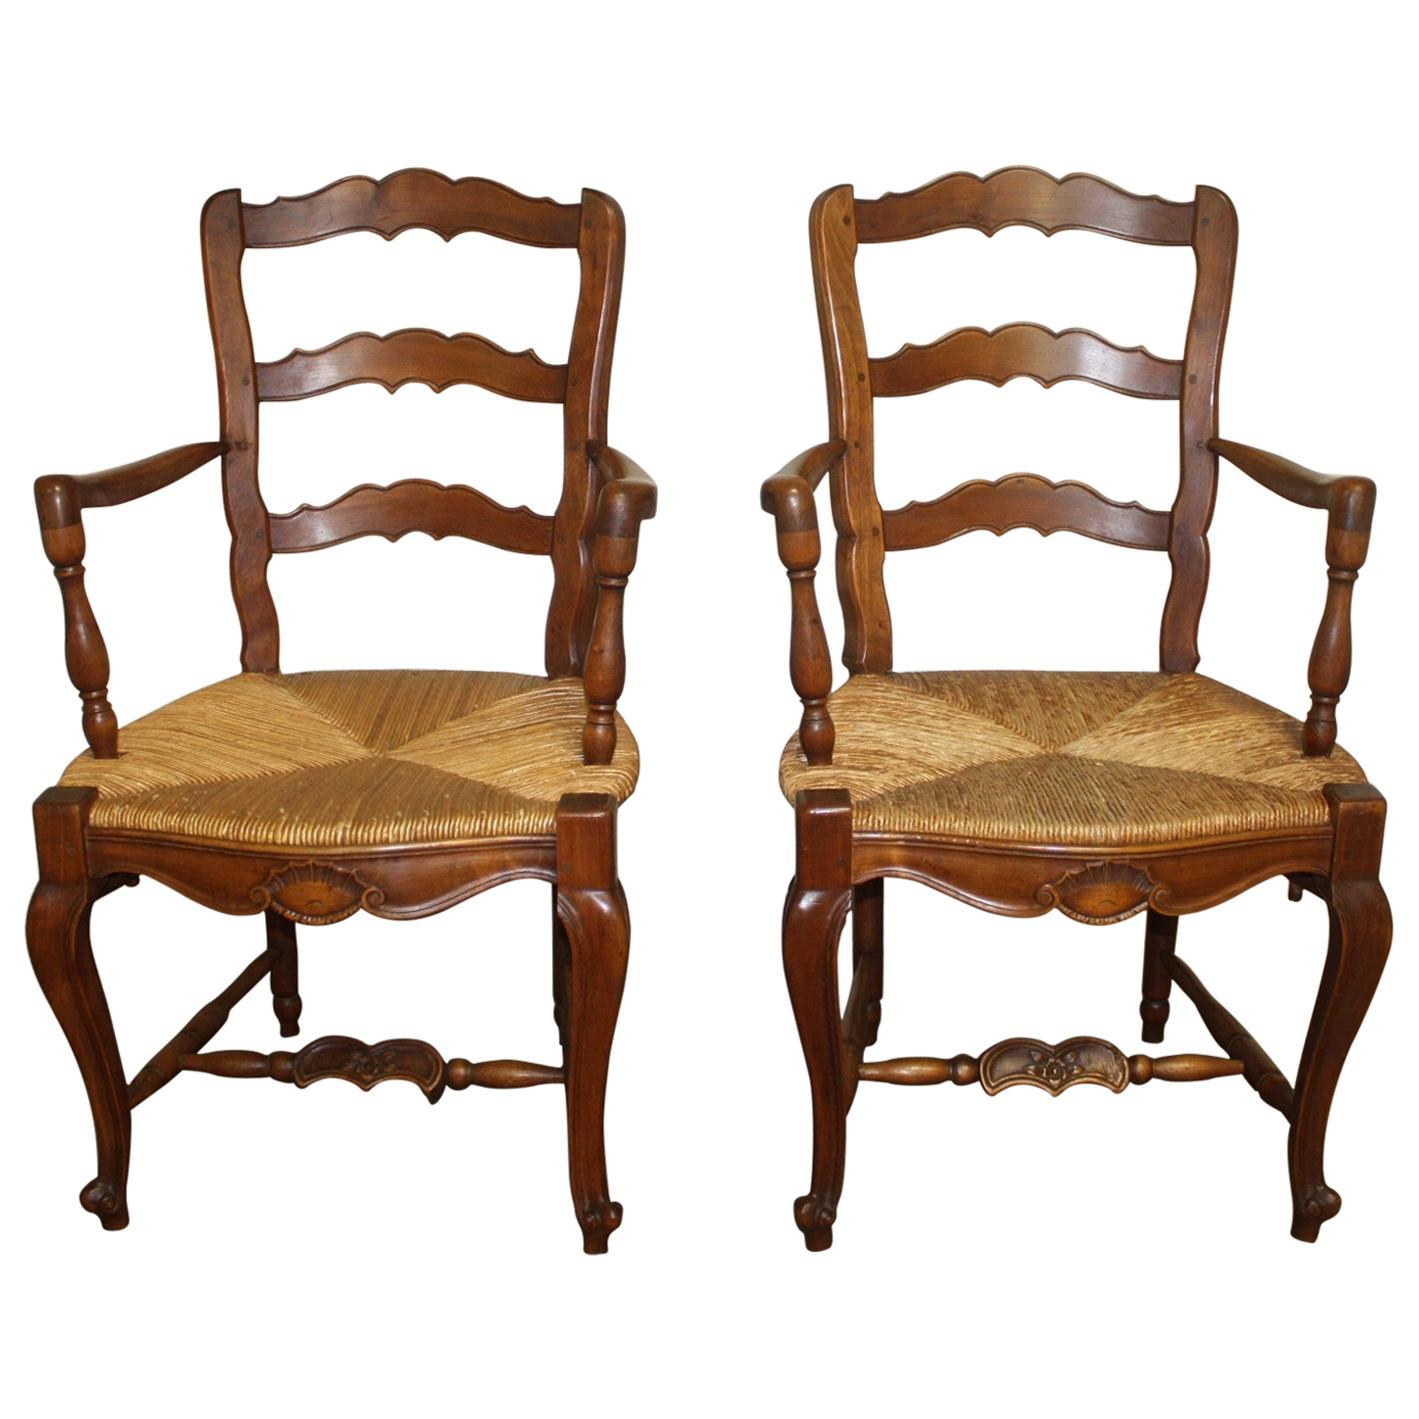 Pair of Early 20th Century French Provencal Armchairs